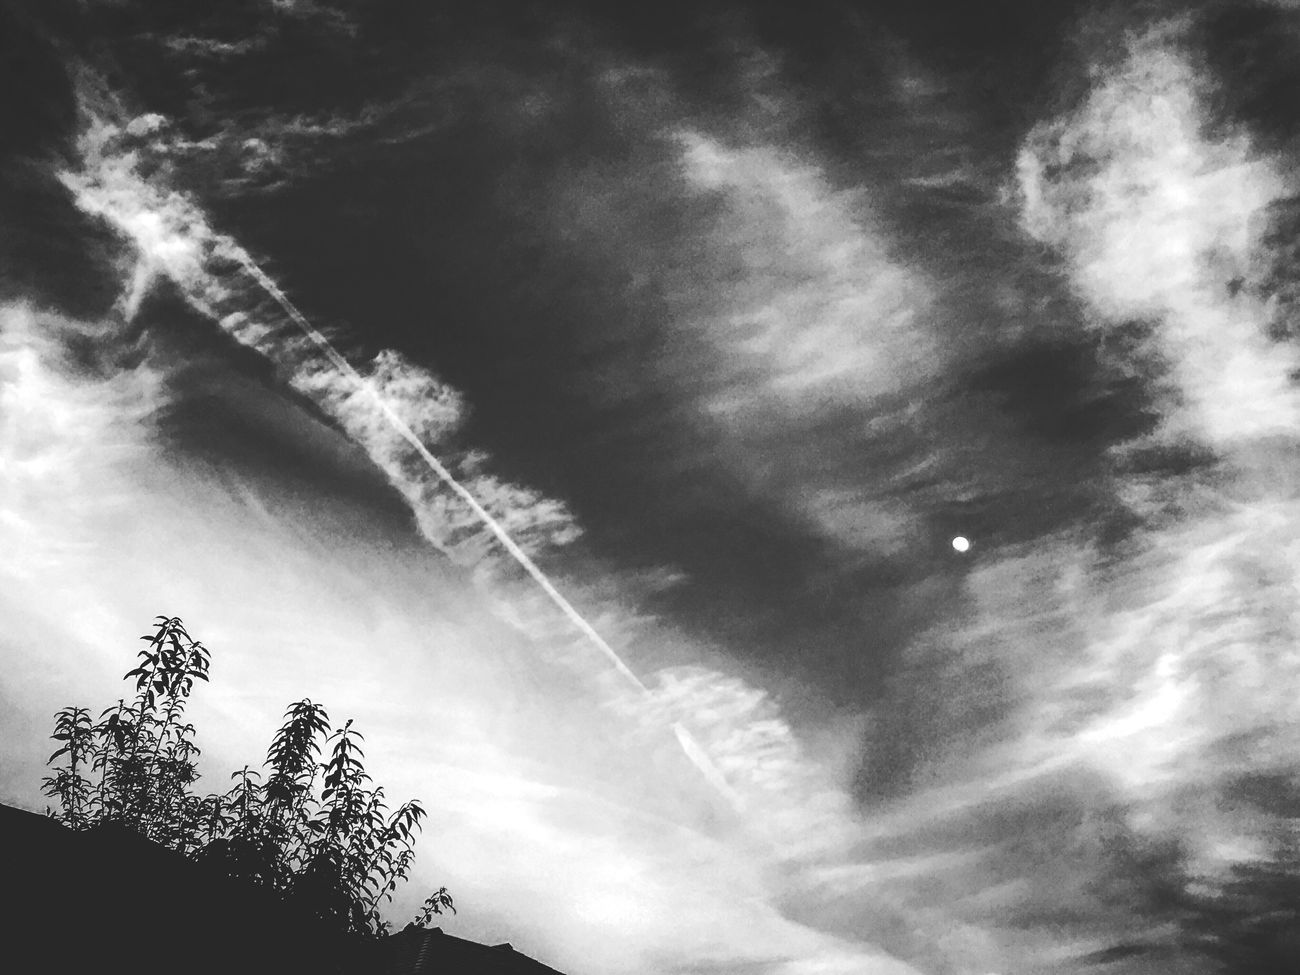 Sky Low Angle View Nature Cloud - Sky Beauty In Nature Day Relaxing Light And Shadow Quiet Moments IPhoneography Getting Inspired Snapshot Monochrome Moon Blackandwhite